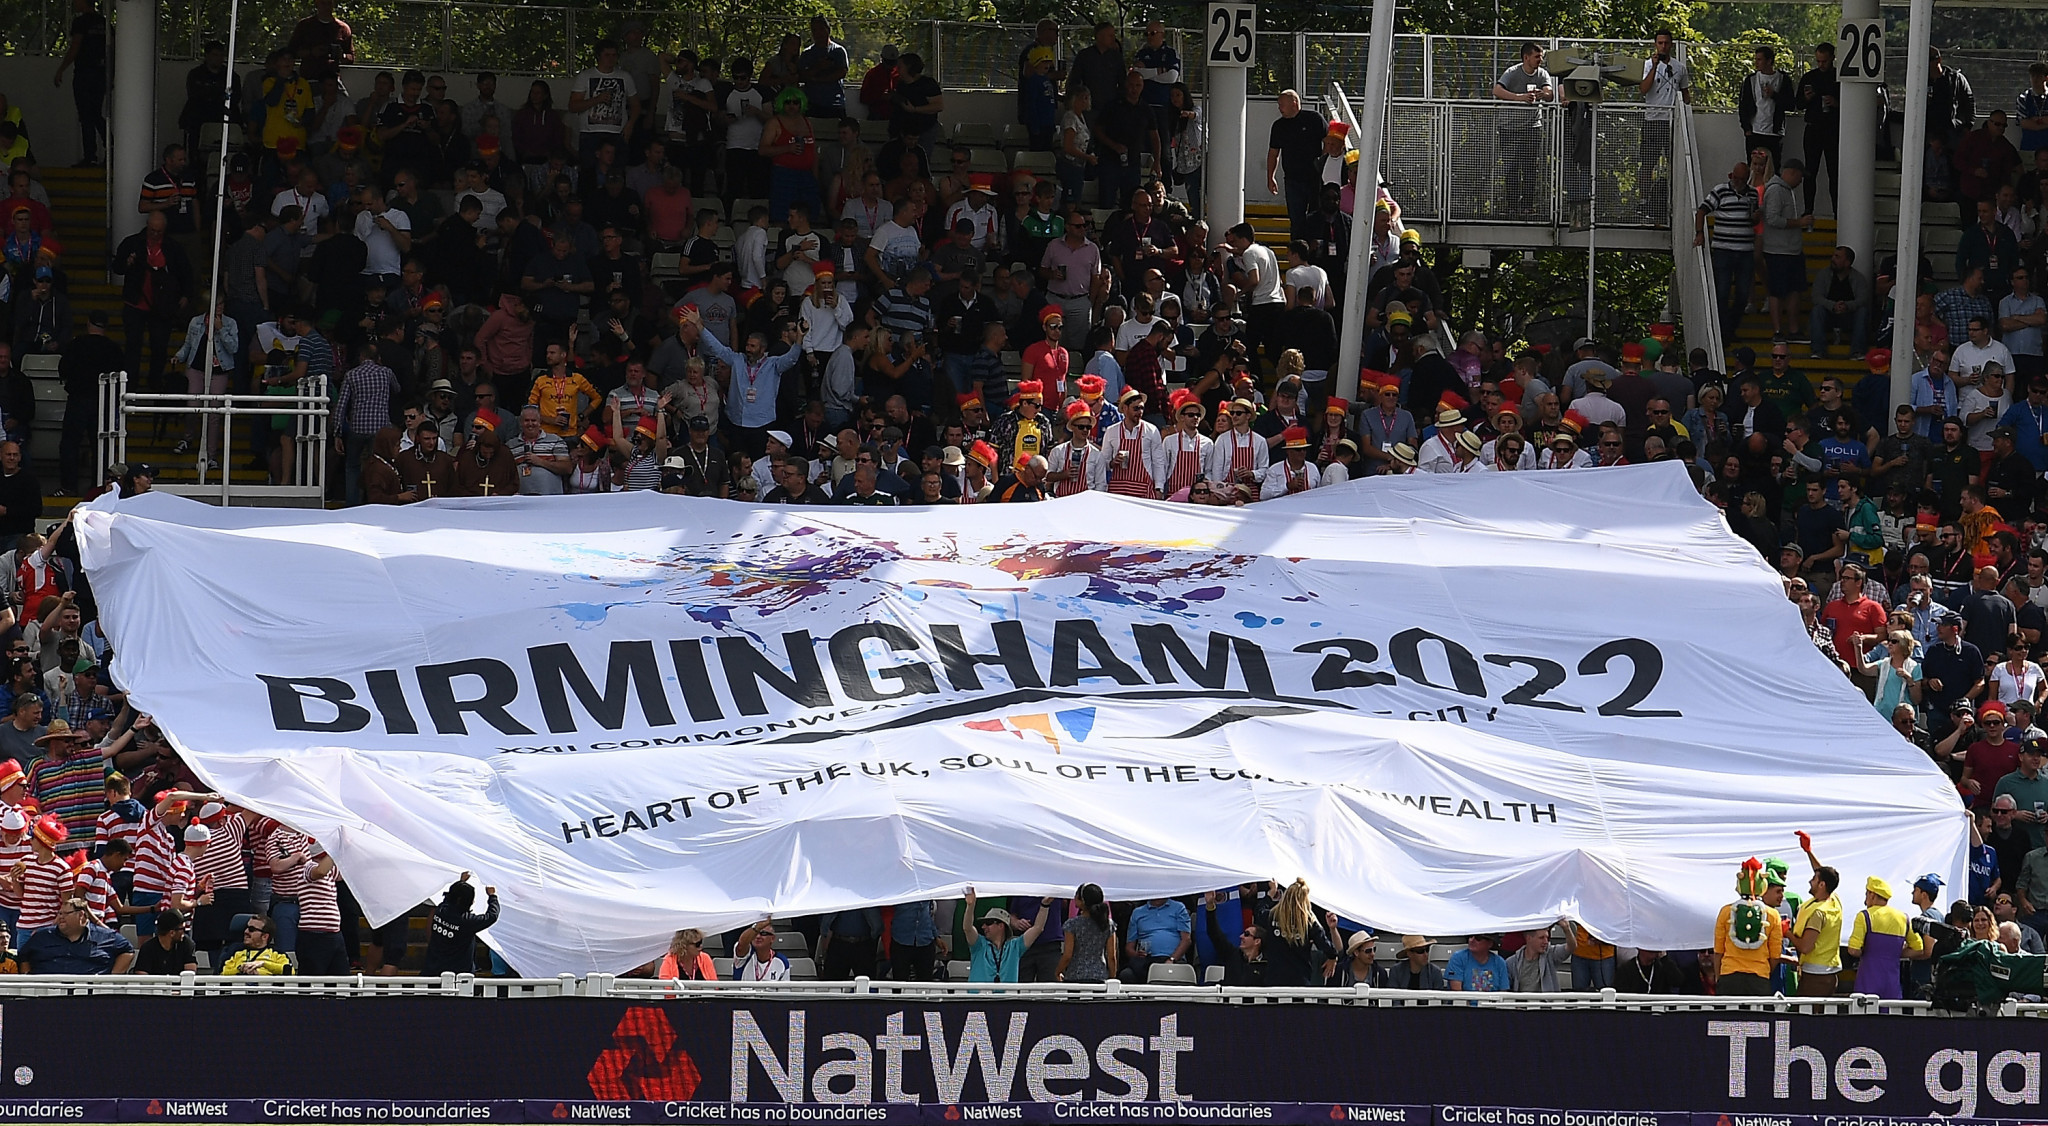 Birmingham 2022 has responded to criticism over a lack of diversity in its Executive Board ©Getty Images